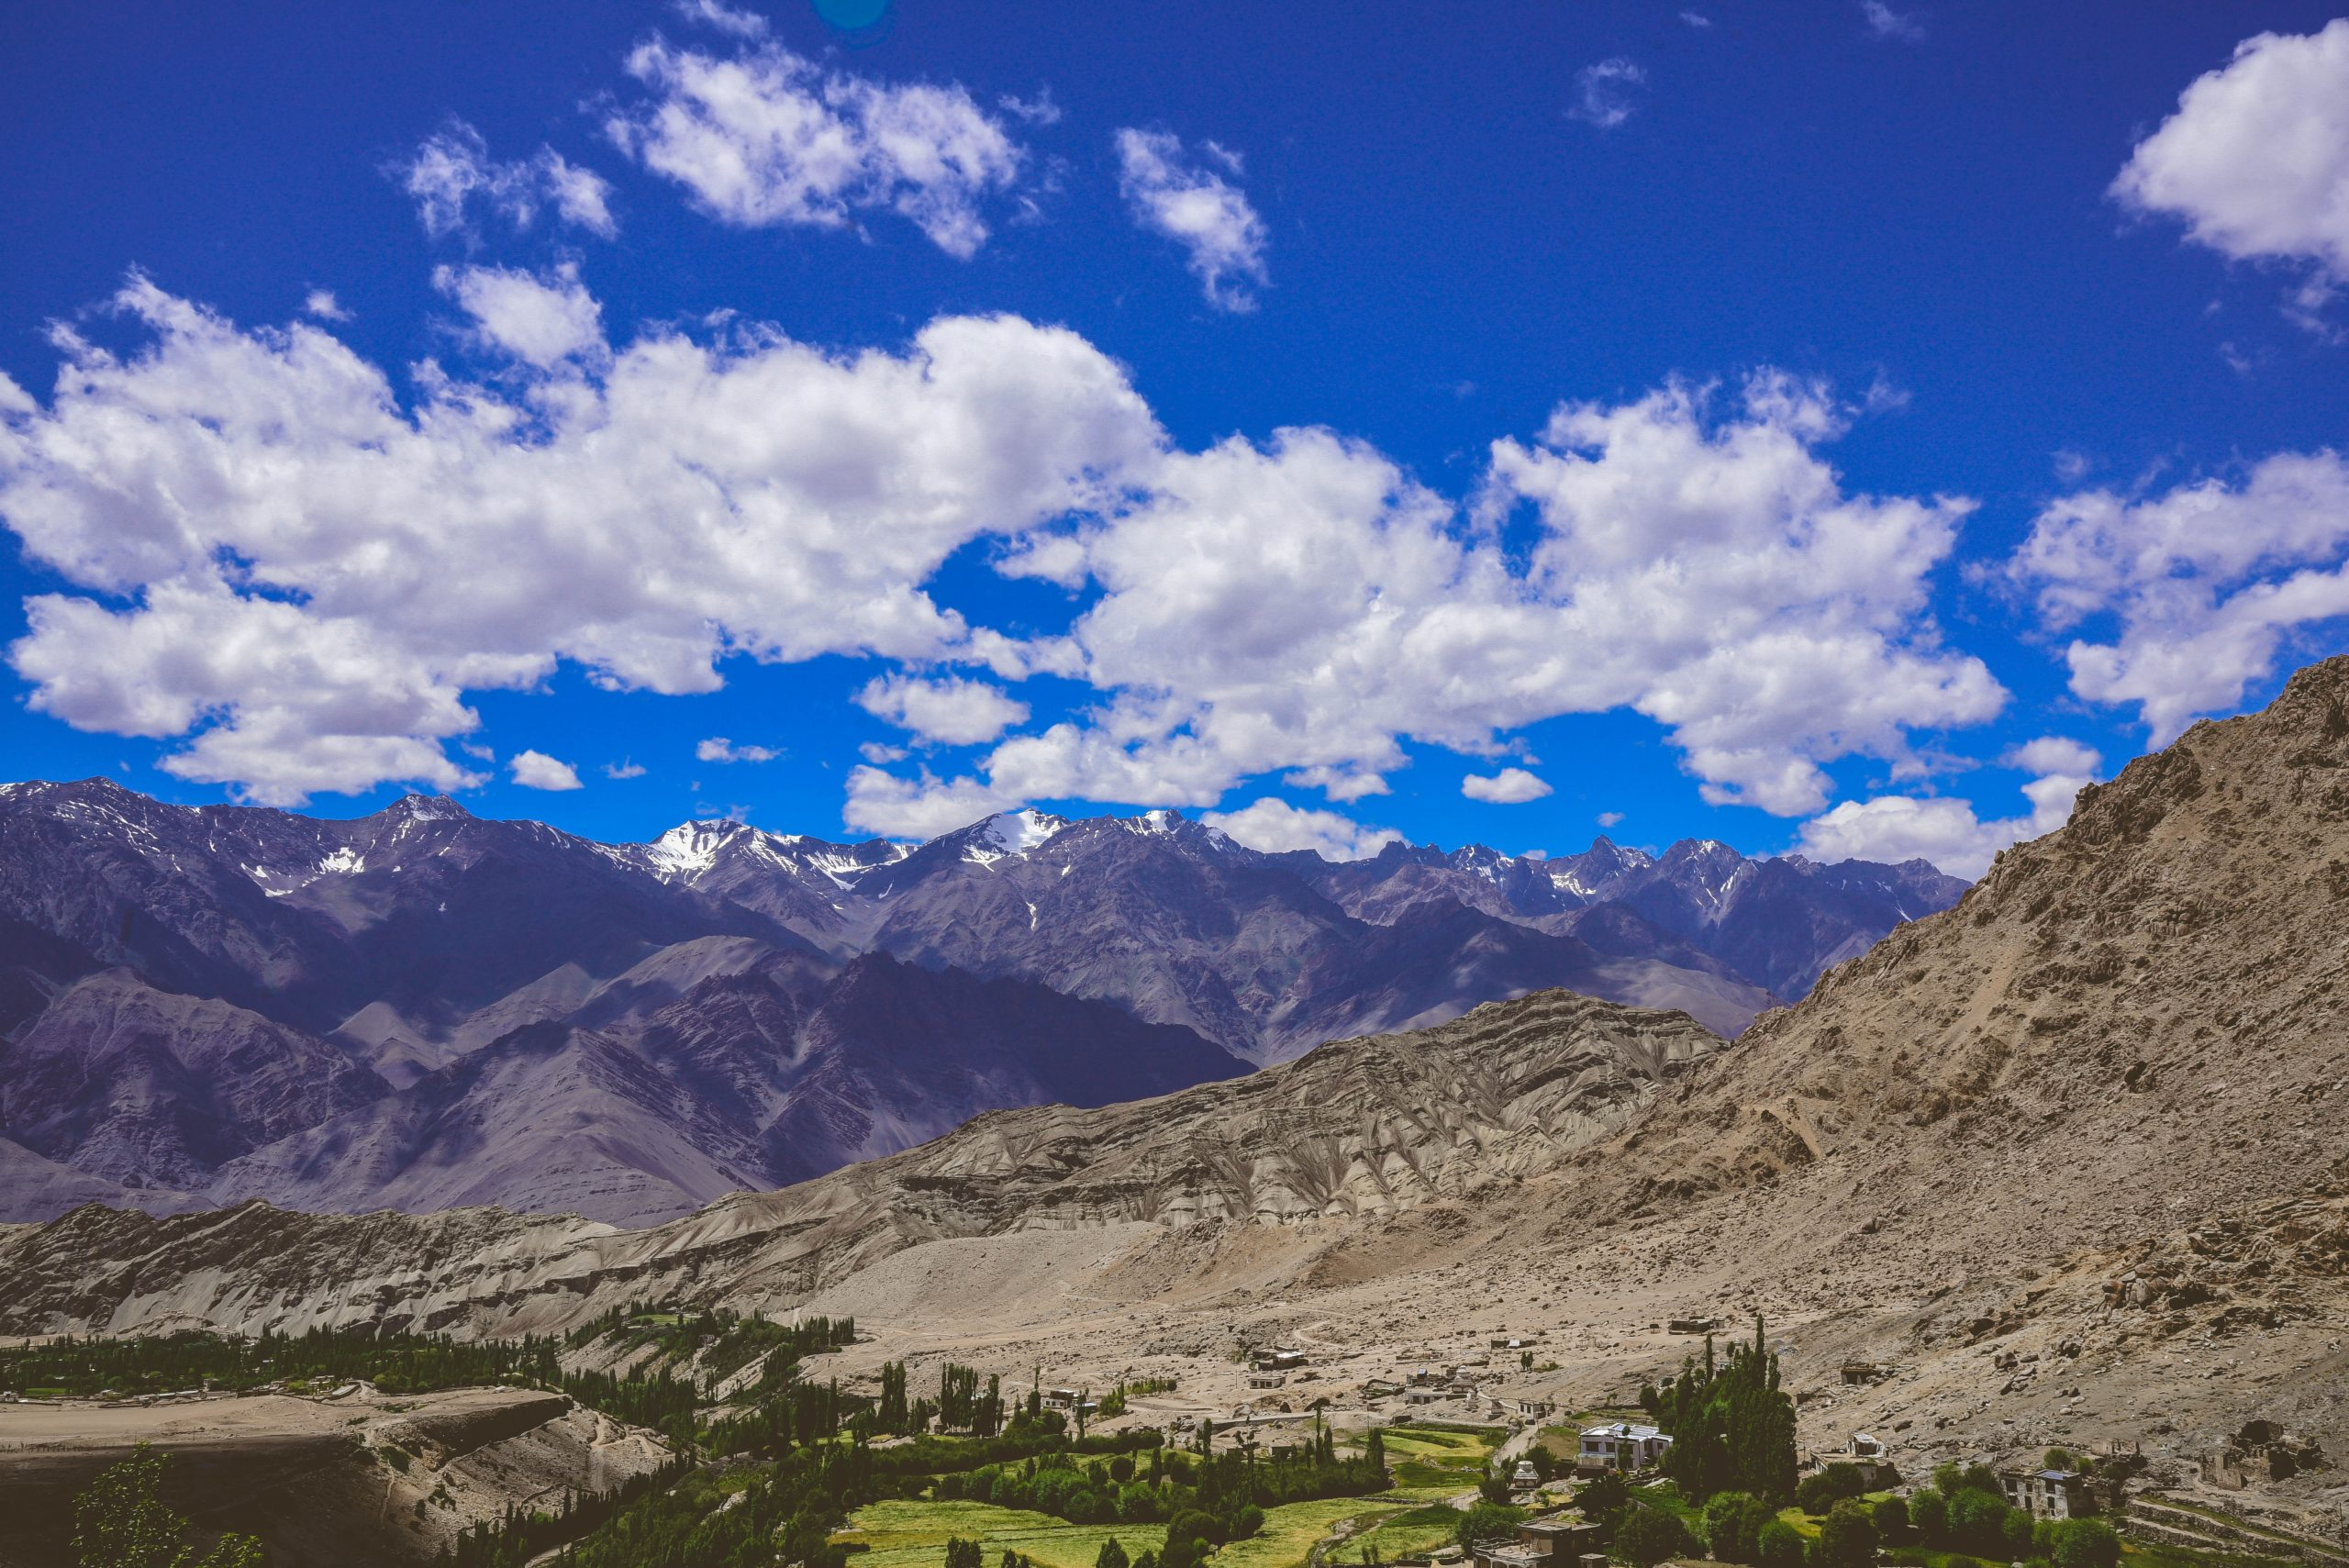 mountain valleys and the sky